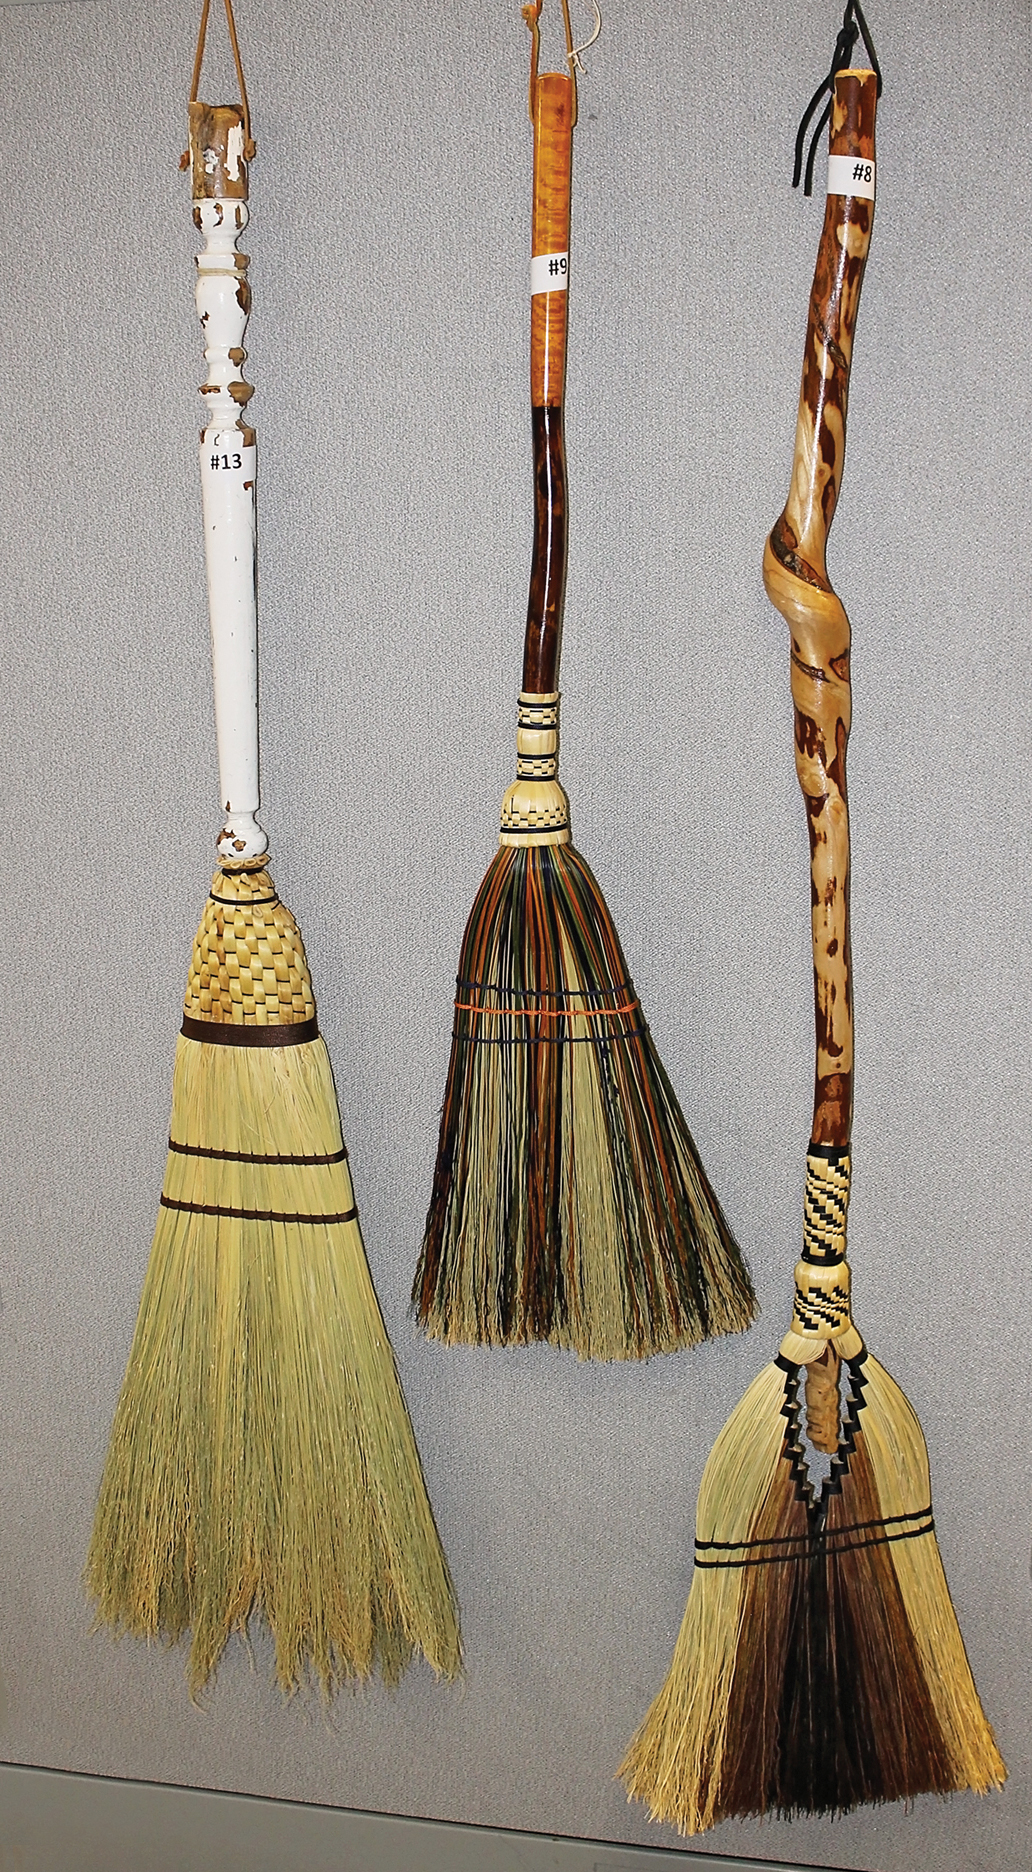 Broom Contest